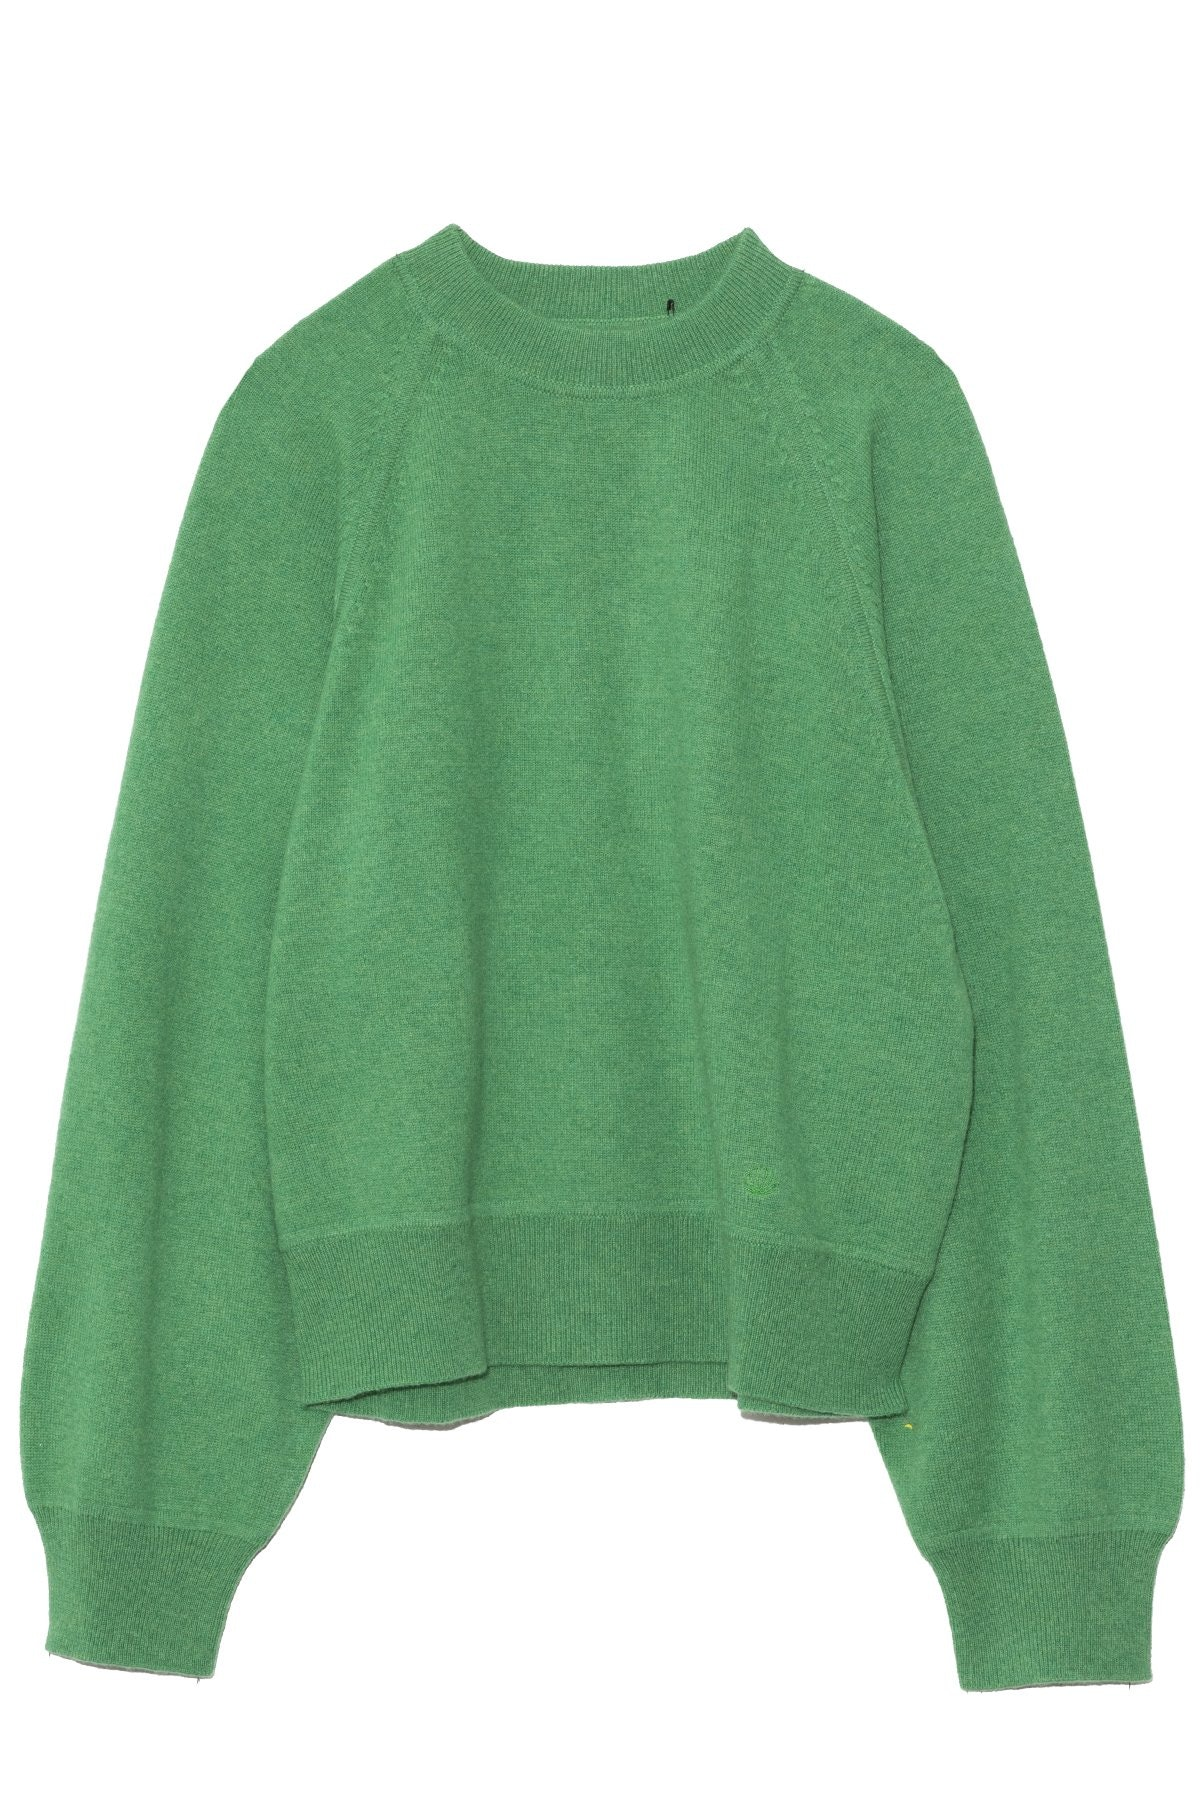 Pemba Cashmere Sweater in Green: image 1